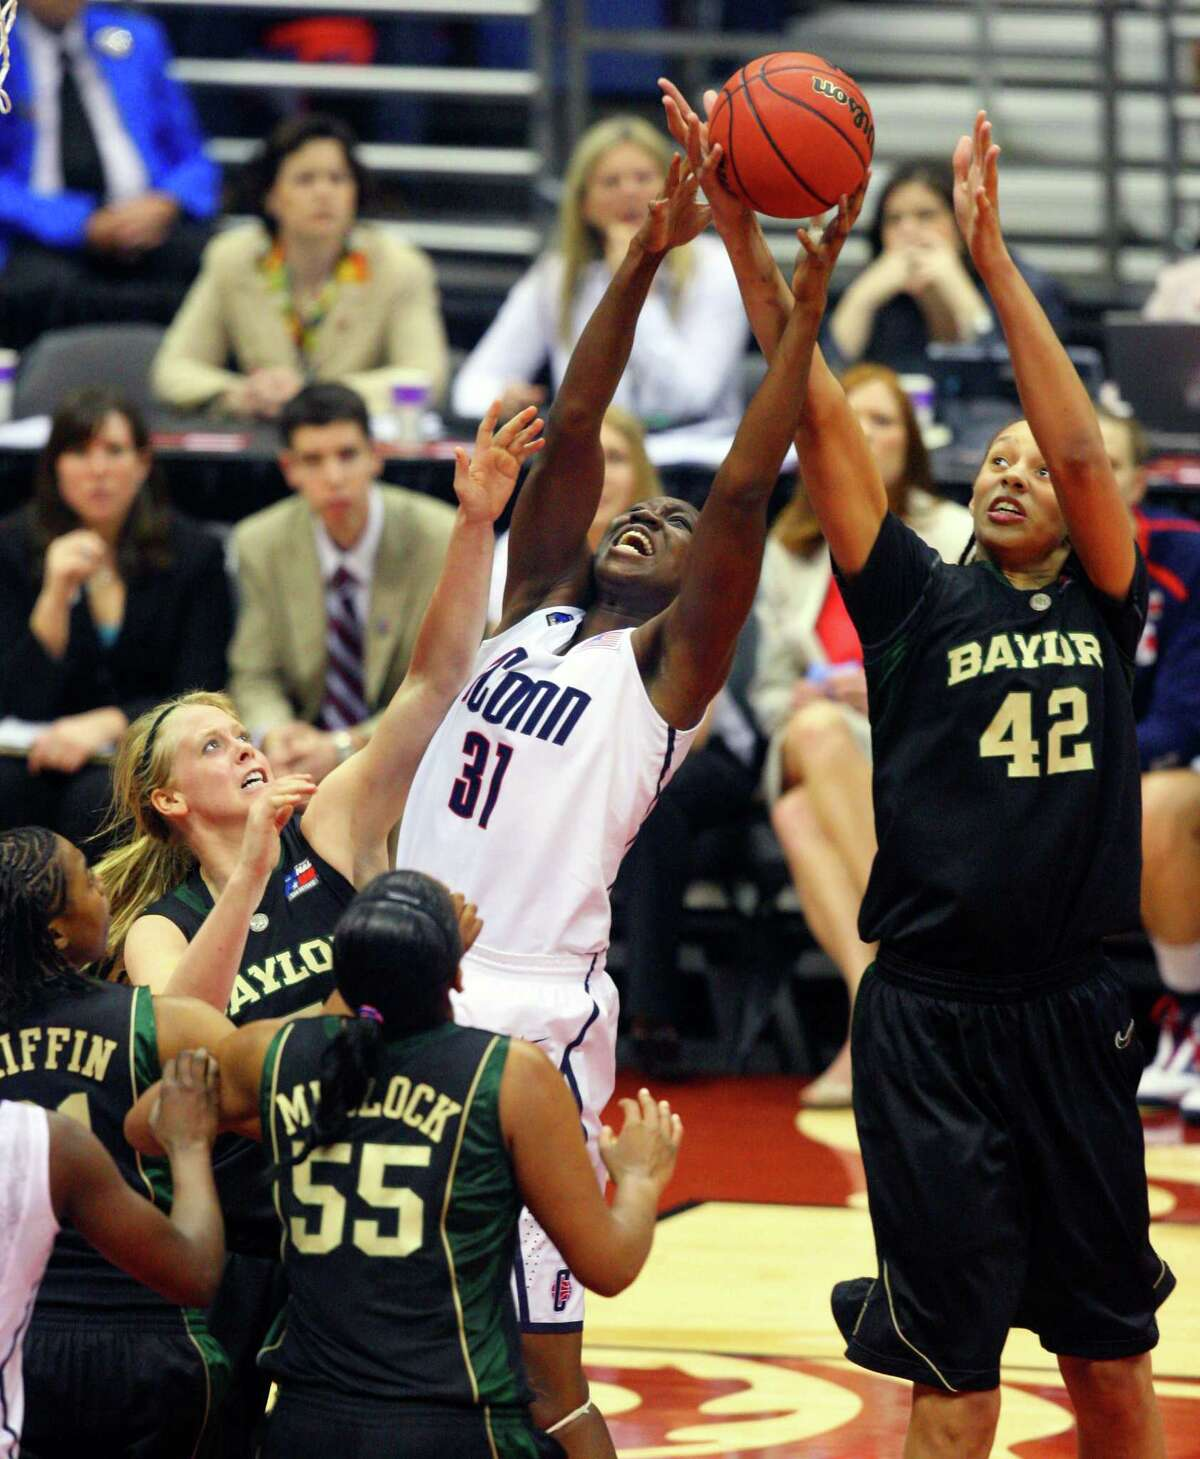 UConn's Tina Charles grabs a rebound while surrounded by four Baylor players, including Brittney Griner, during the Huskies semifinal game in the NCAA Women's Final Four at the Alamodome on April 4, 2010, against the Bears.